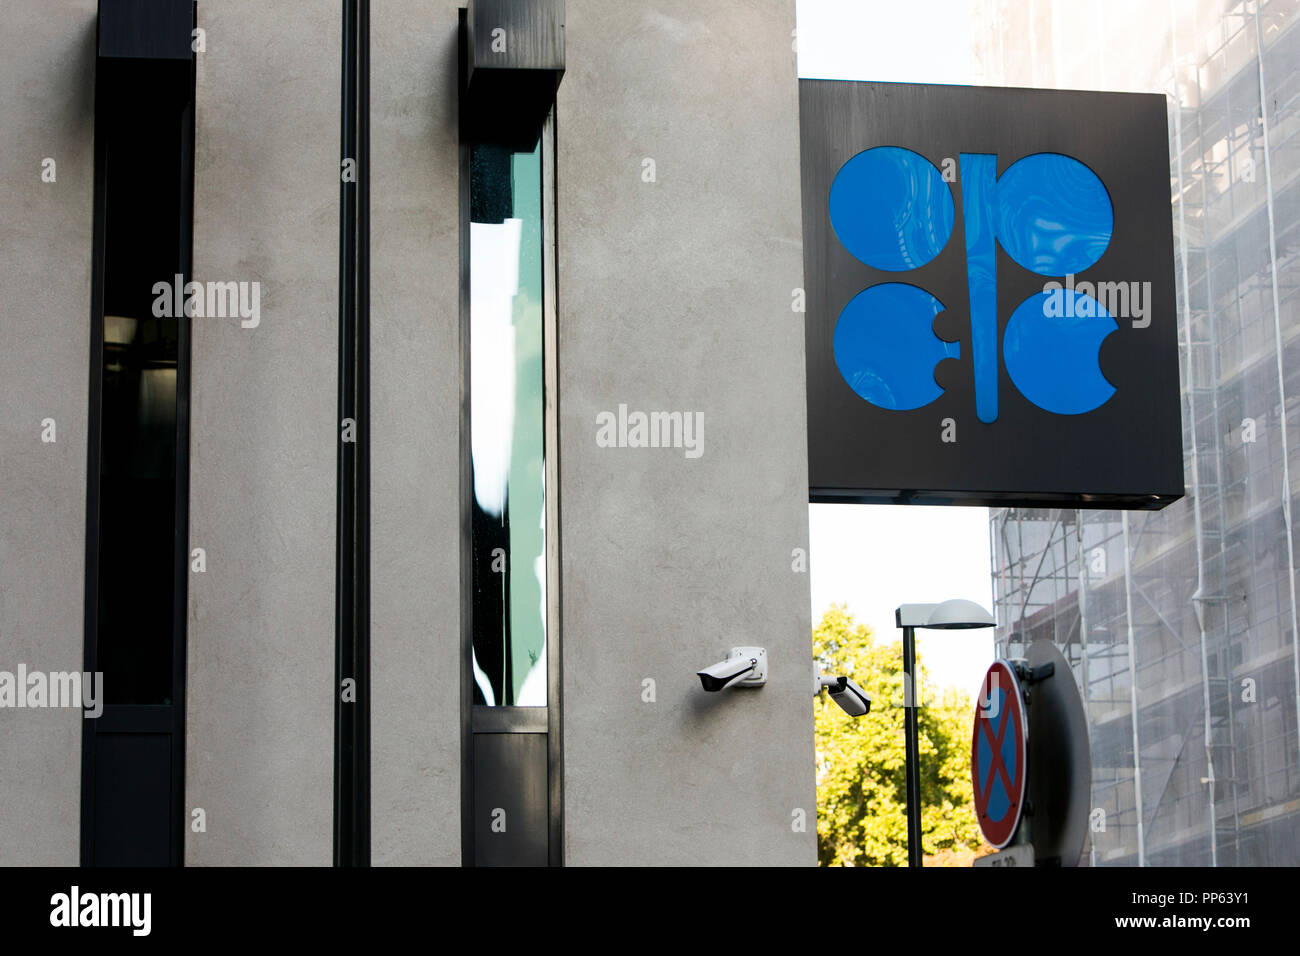 A logo sign outside of the headquarters of The Organization of the Petroleum Exporting Countries (OPEC) in Vienna, Austria, on September 6, 2018. - Stock Image